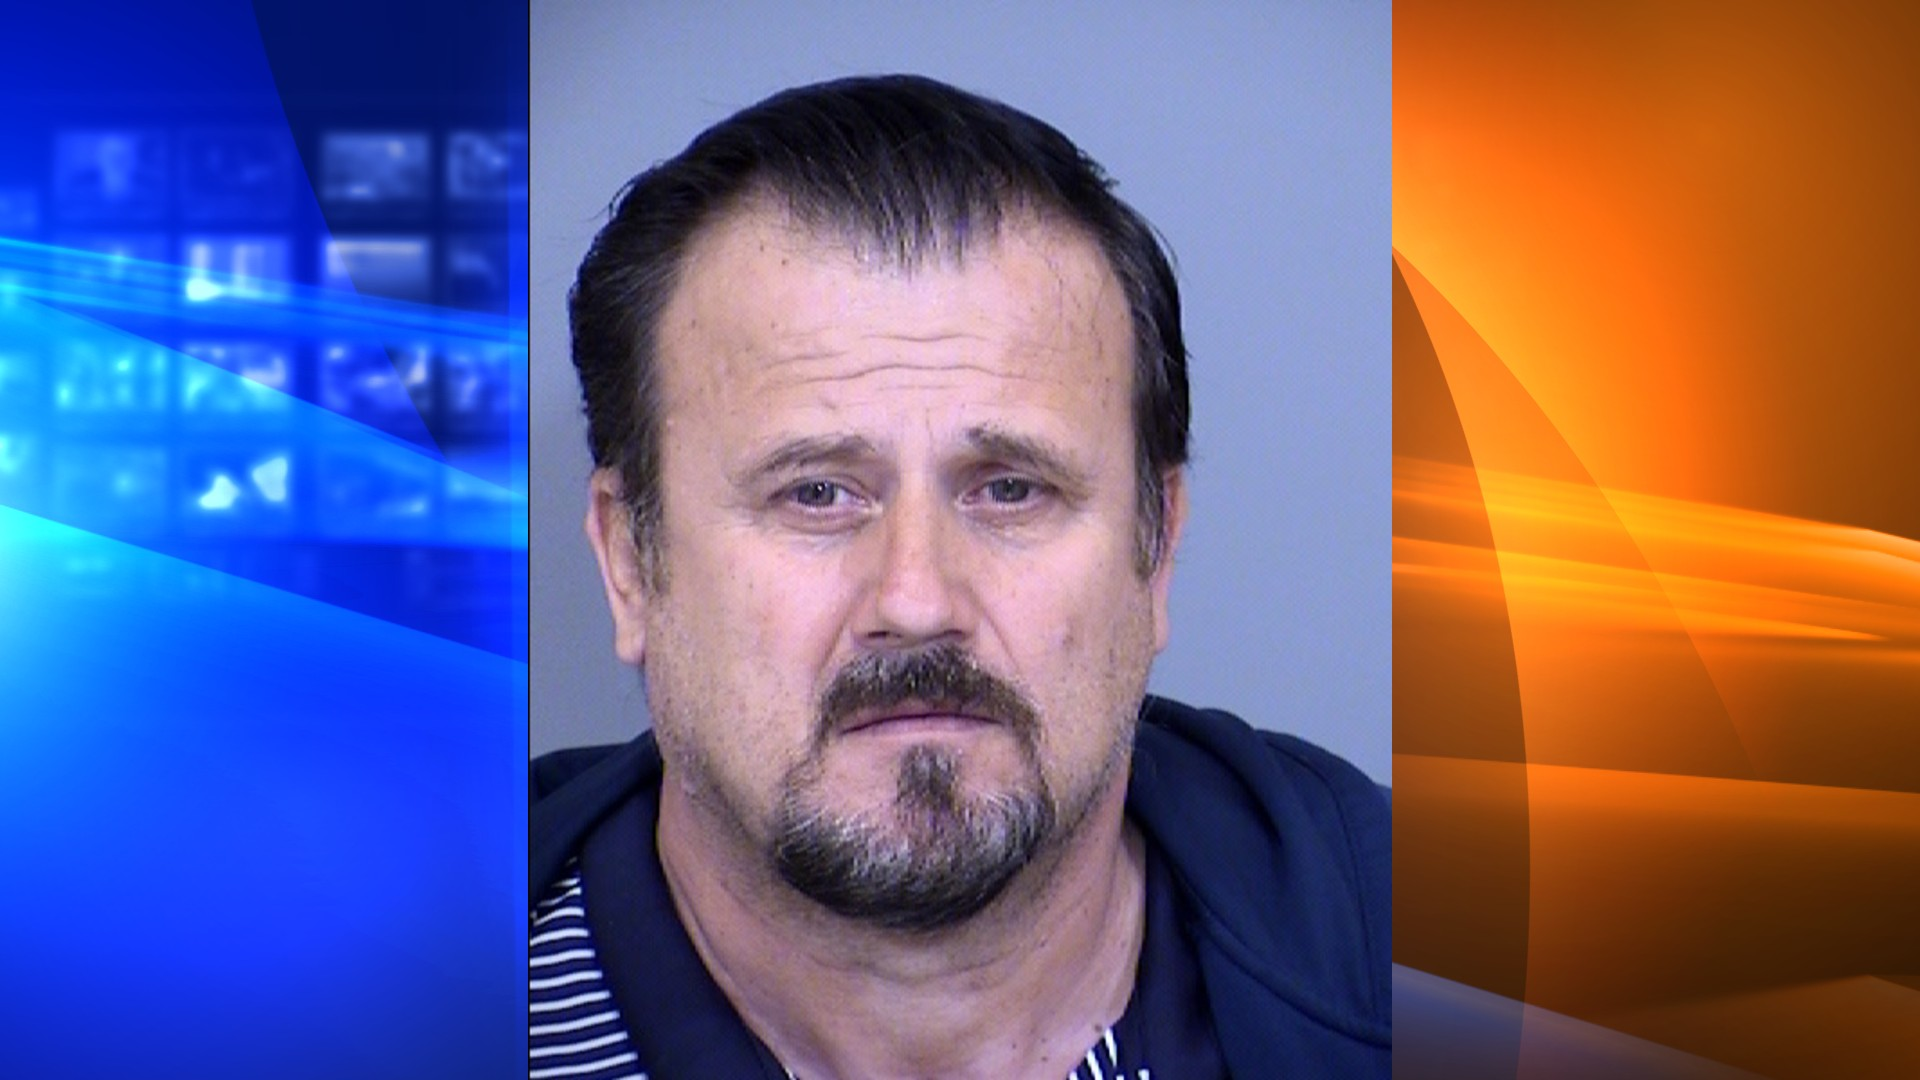 Valera Catuna is seen in a photo released by the Maricopa County Sheriff's Office.